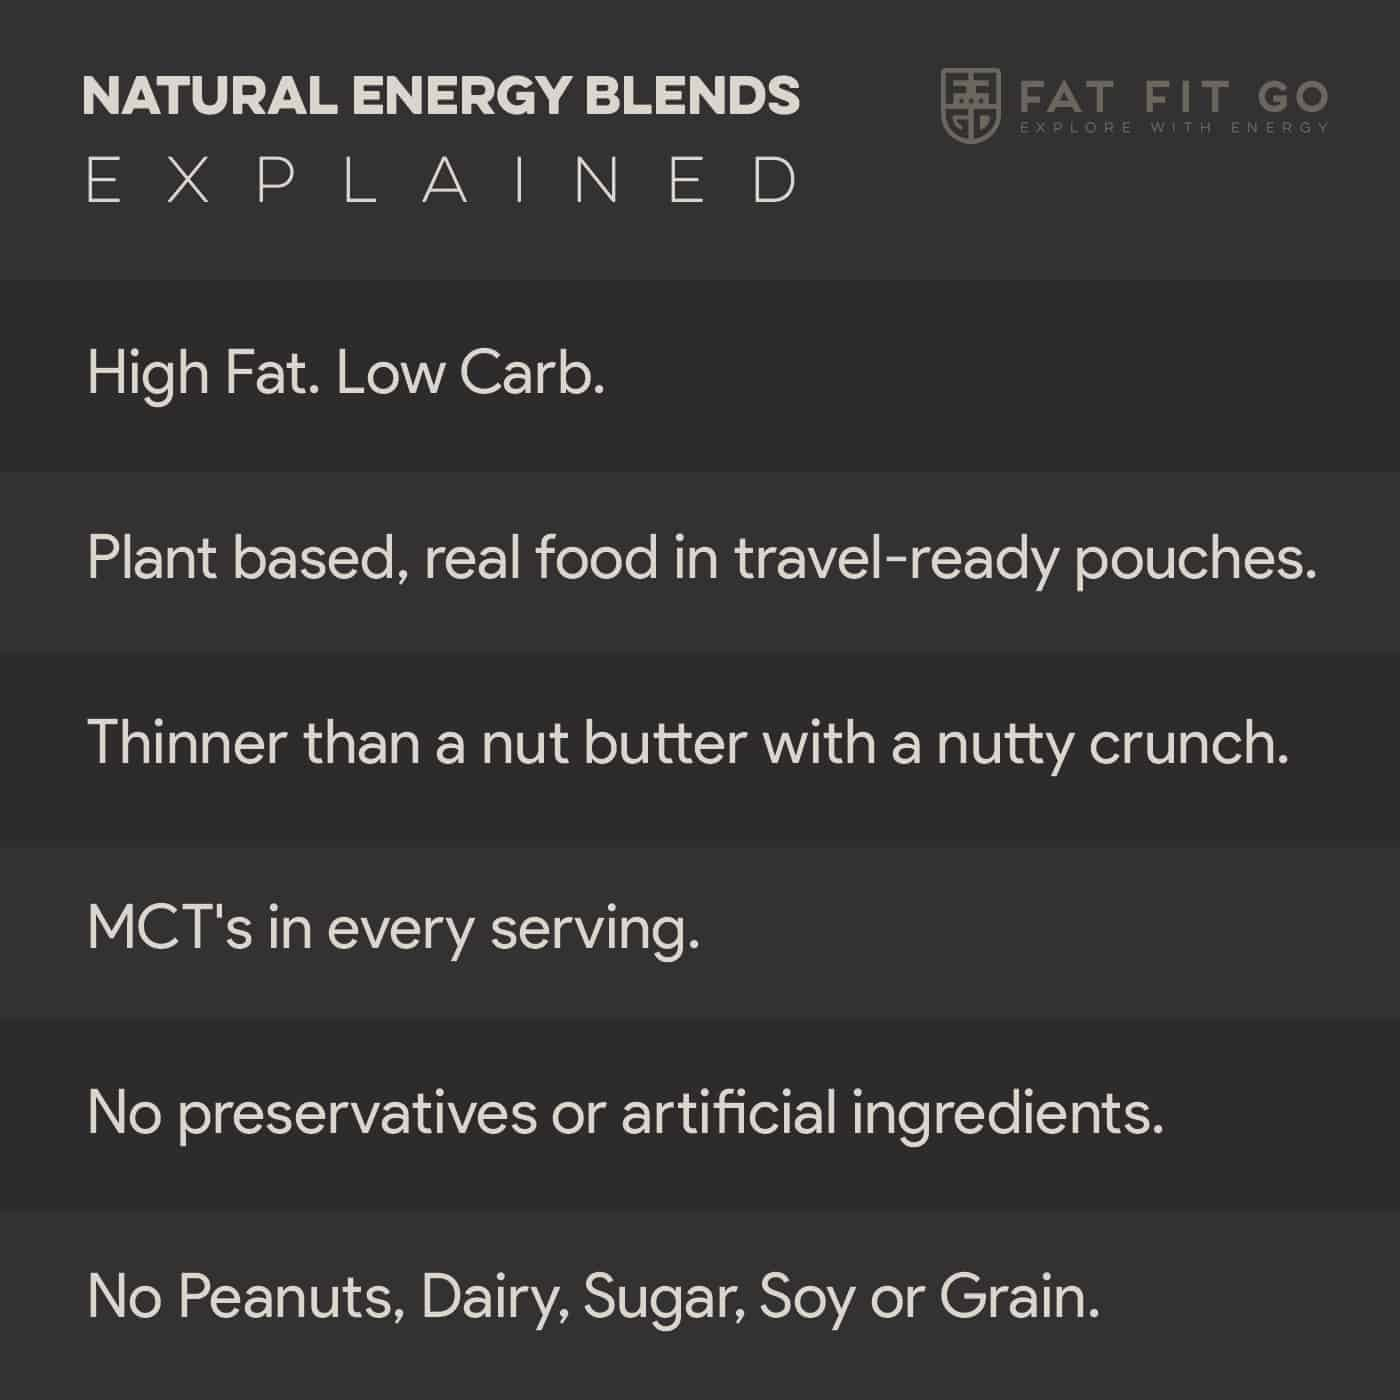 Natural Energy Blends Explained Fat Fit Go